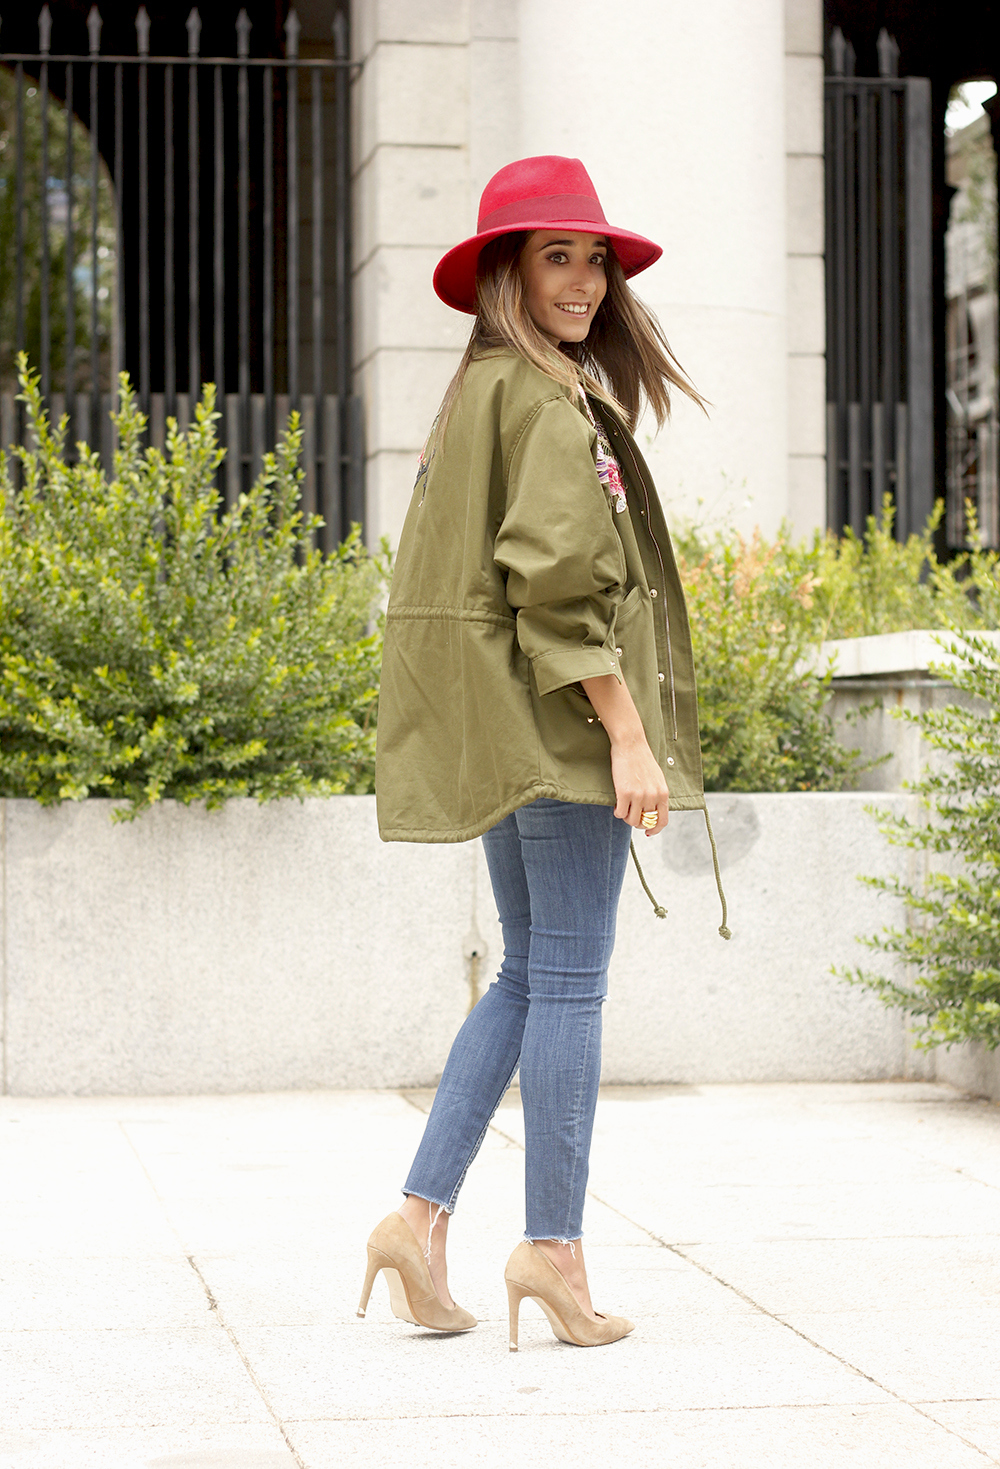 Green Parka Jeans nude heels red uterqüe hat style fashion15